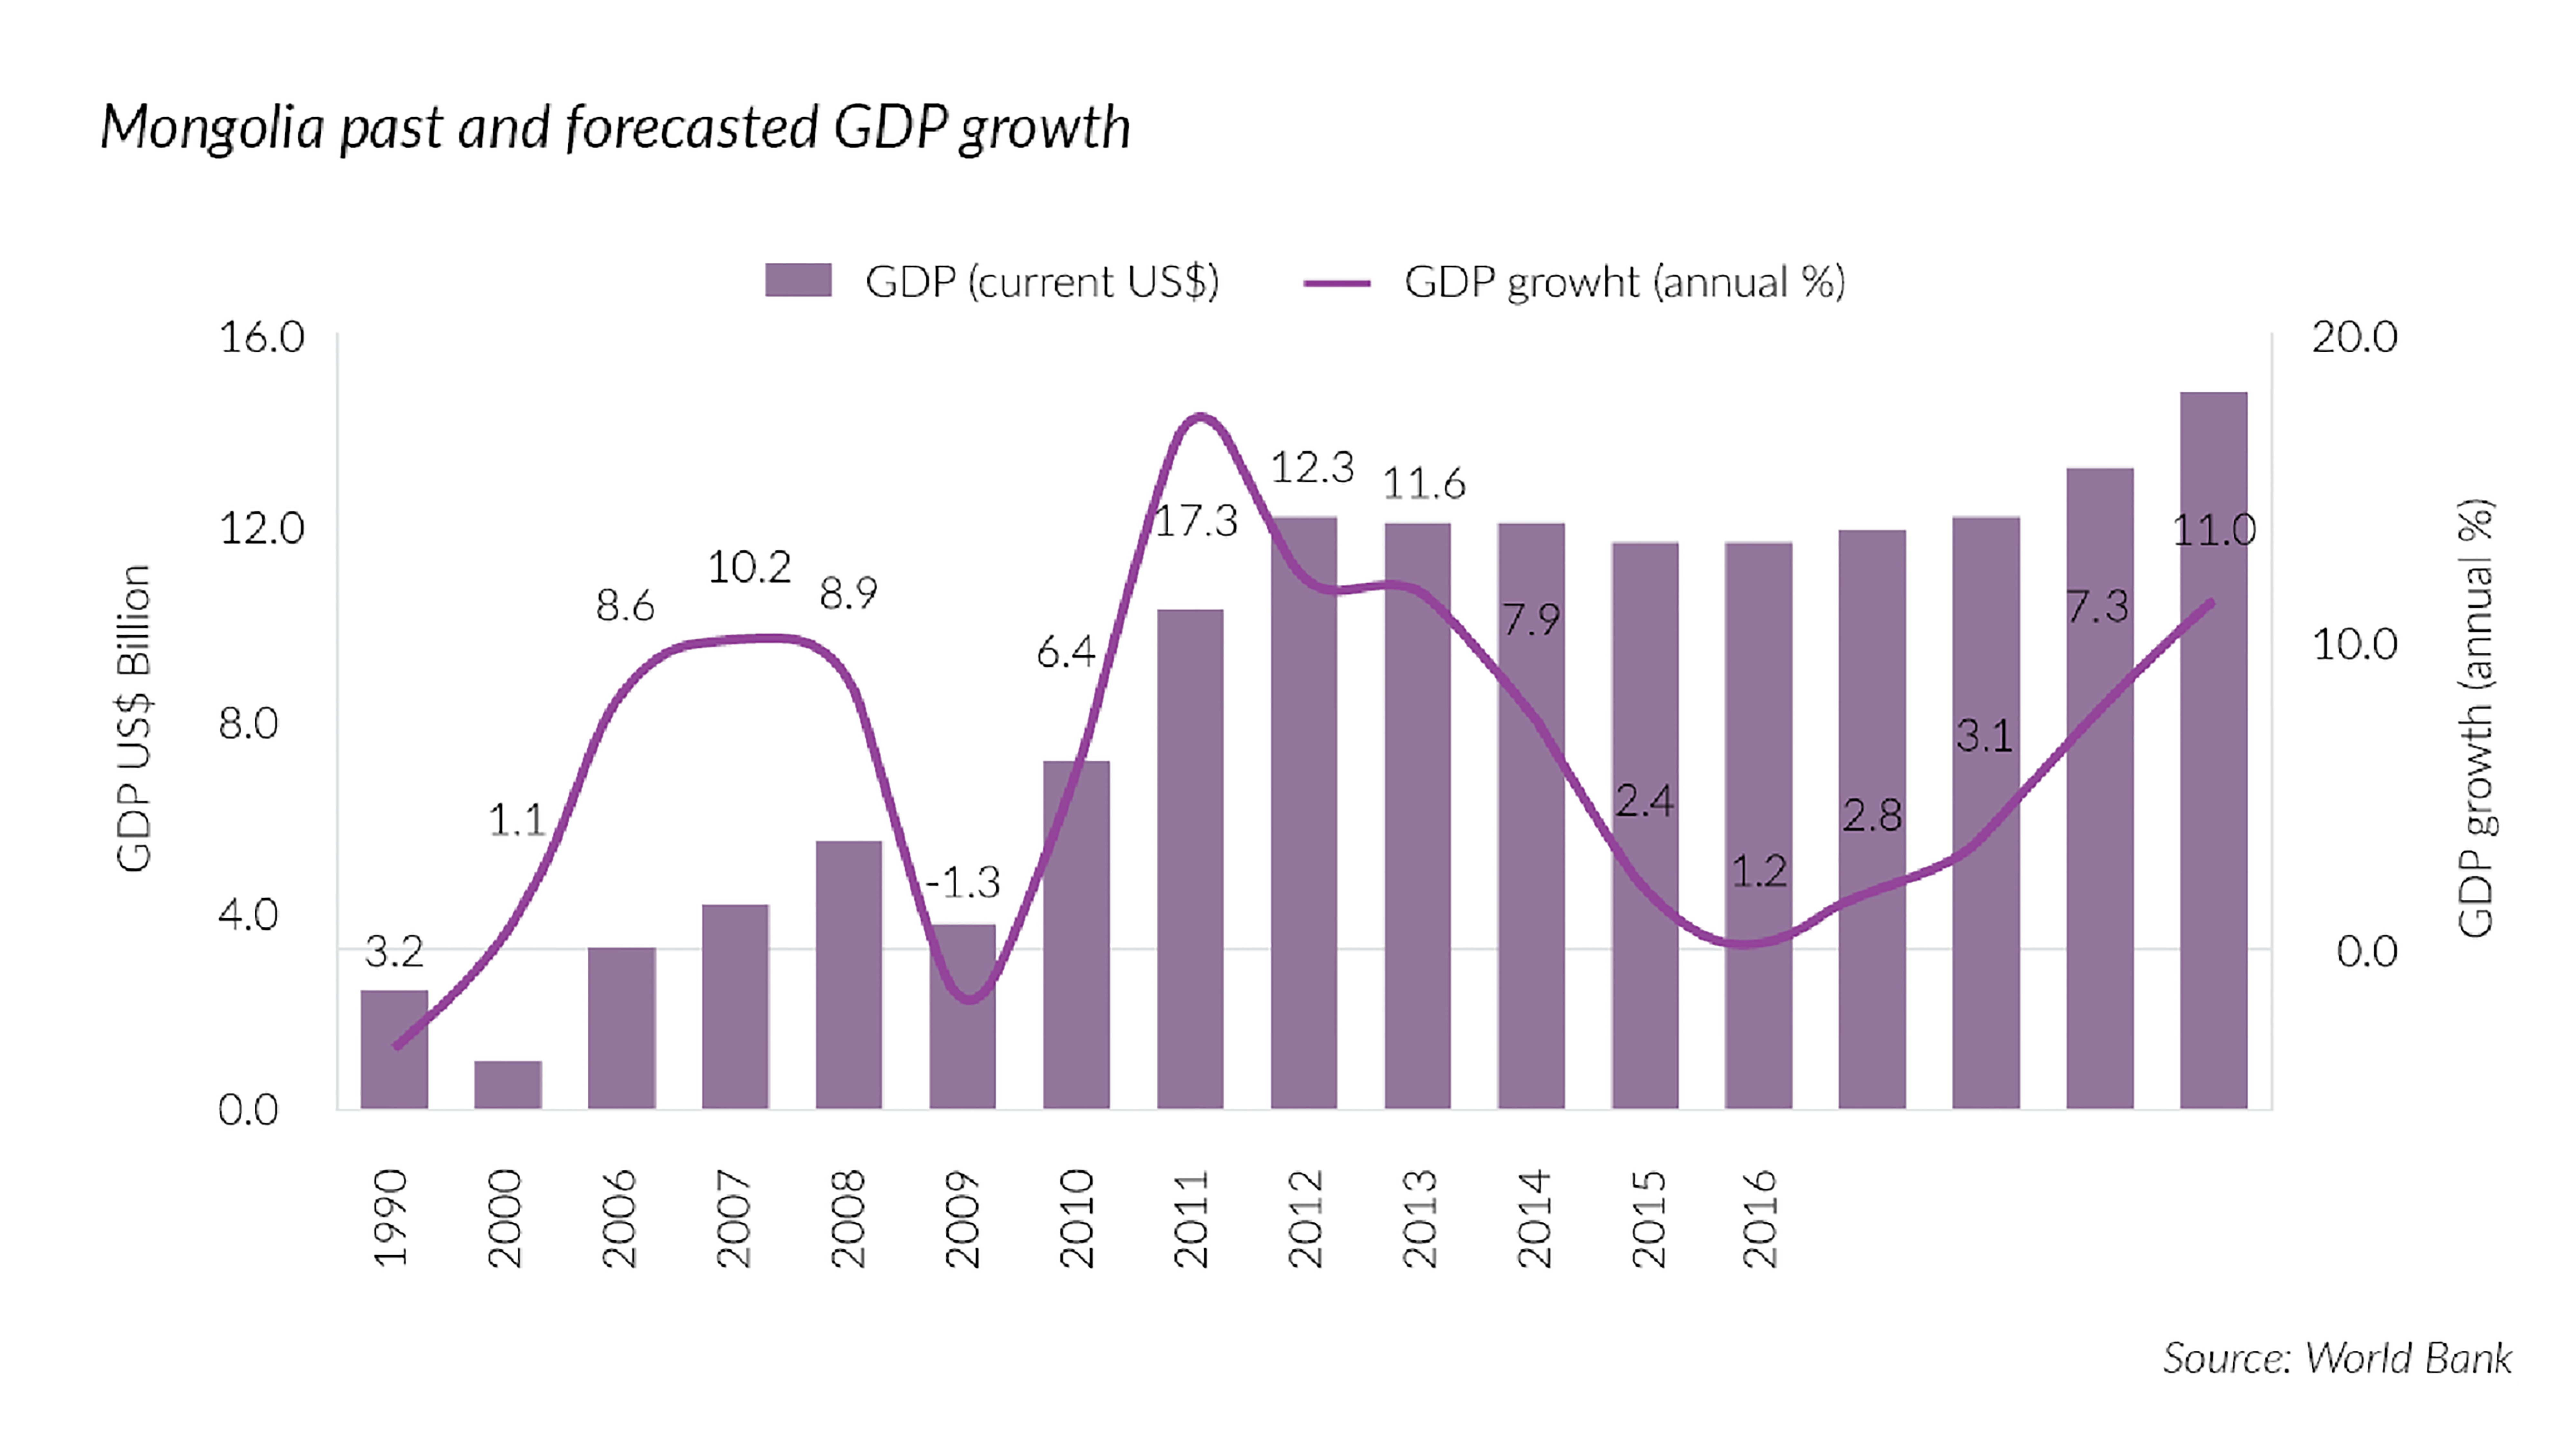 Mongolia past and forecasted GDP growth